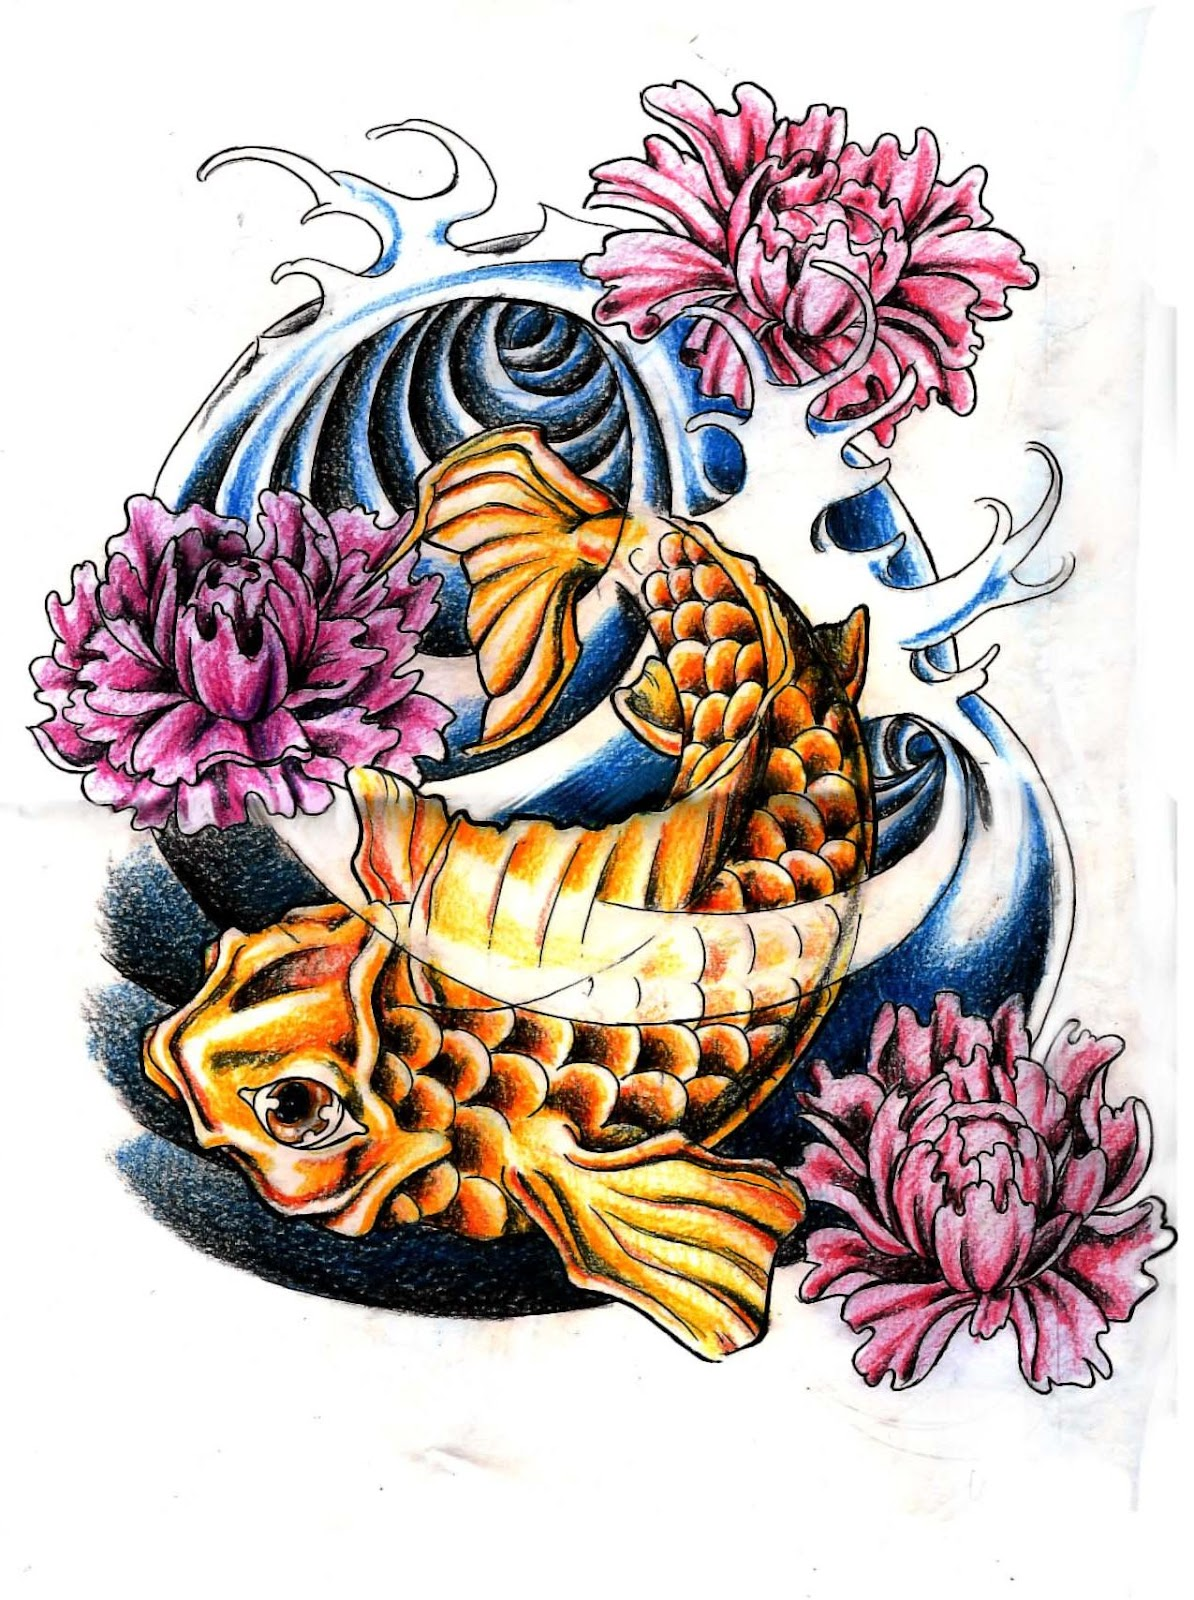 You can get your tattoo design